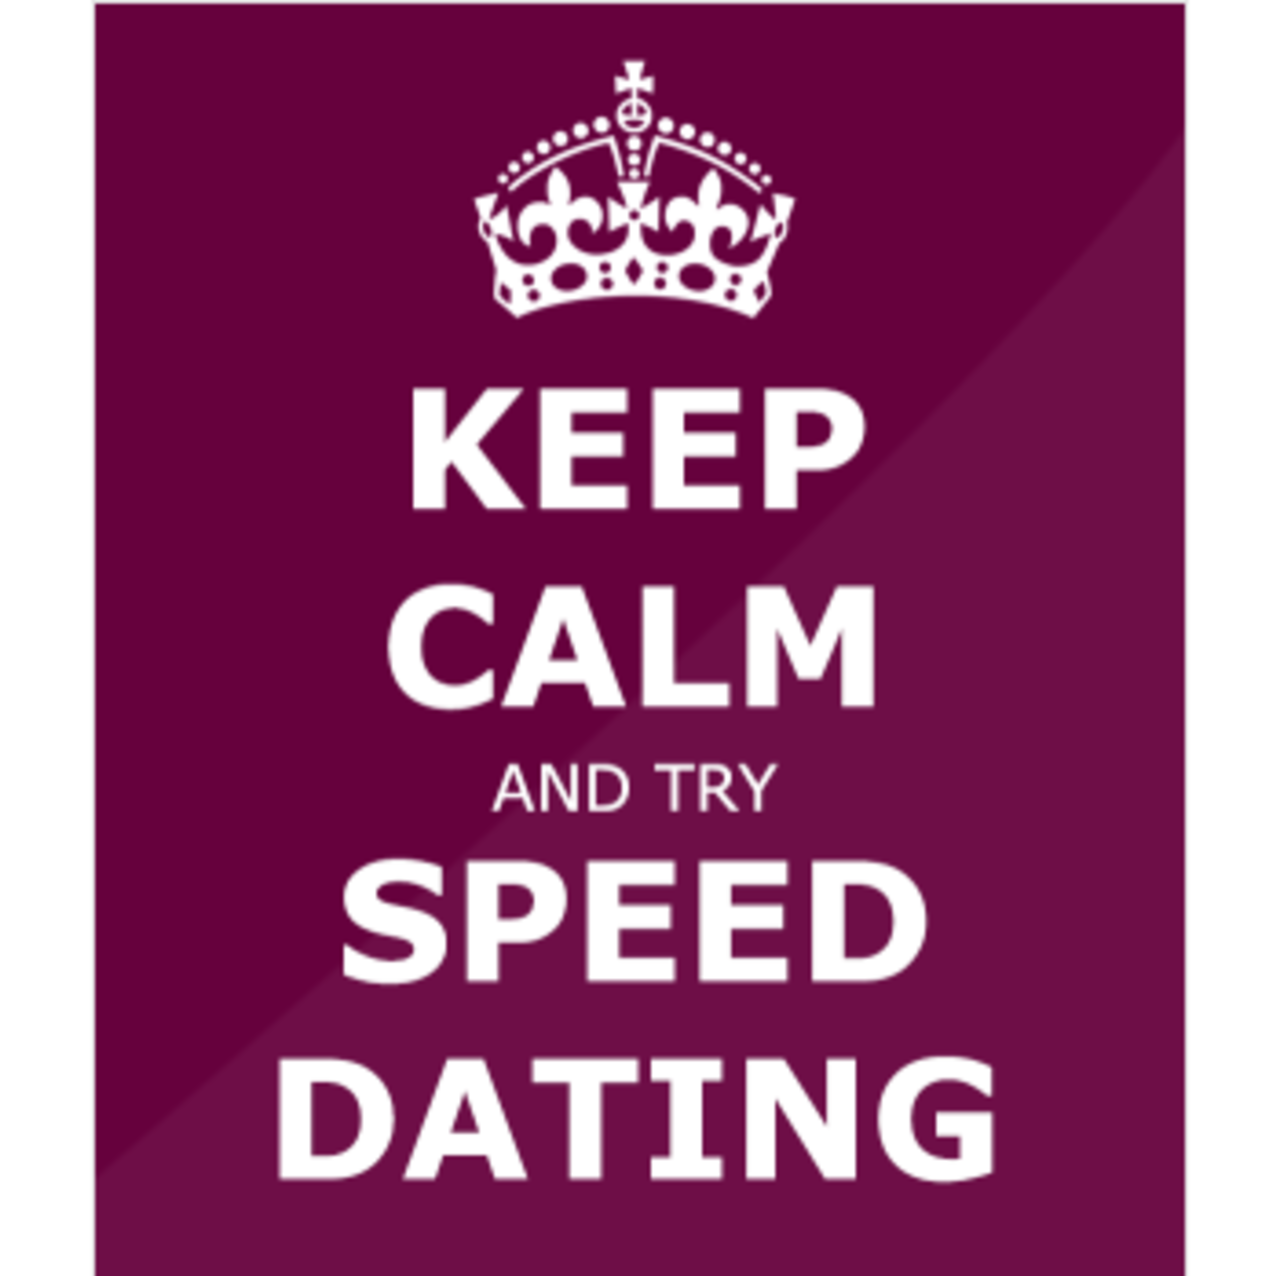 Speed dating gratuit en ligne